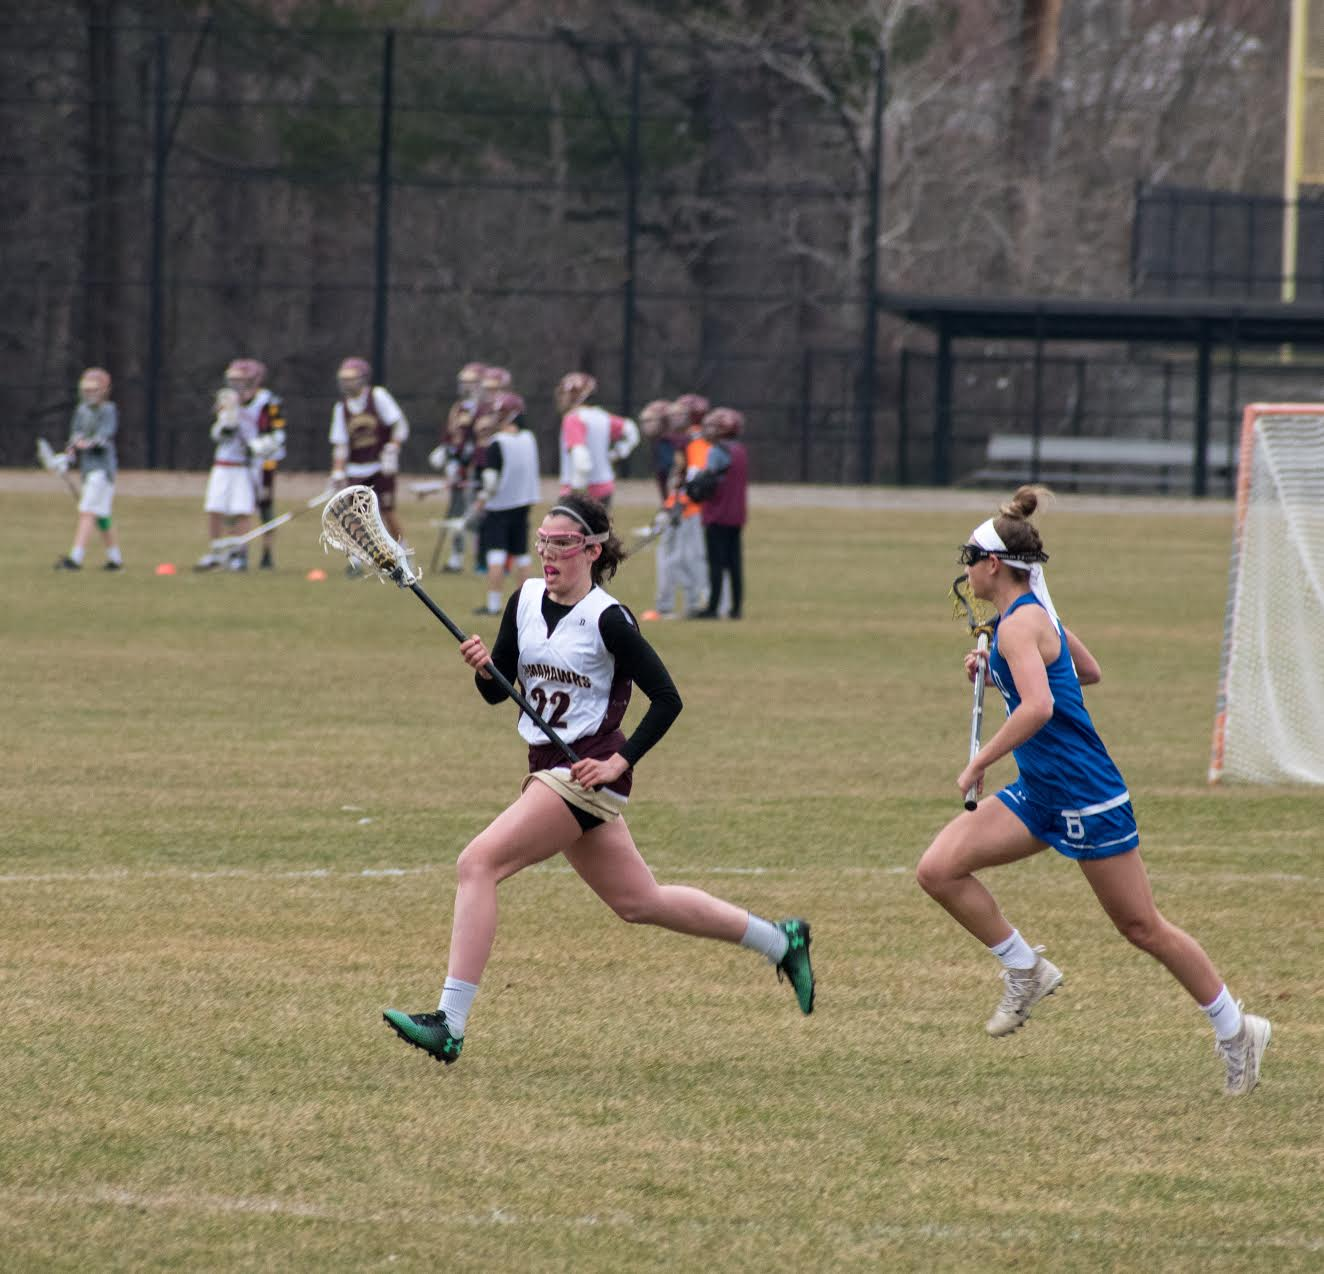 Girls' lacrosse has high hopes for the coming season by focussing on team dynamic.